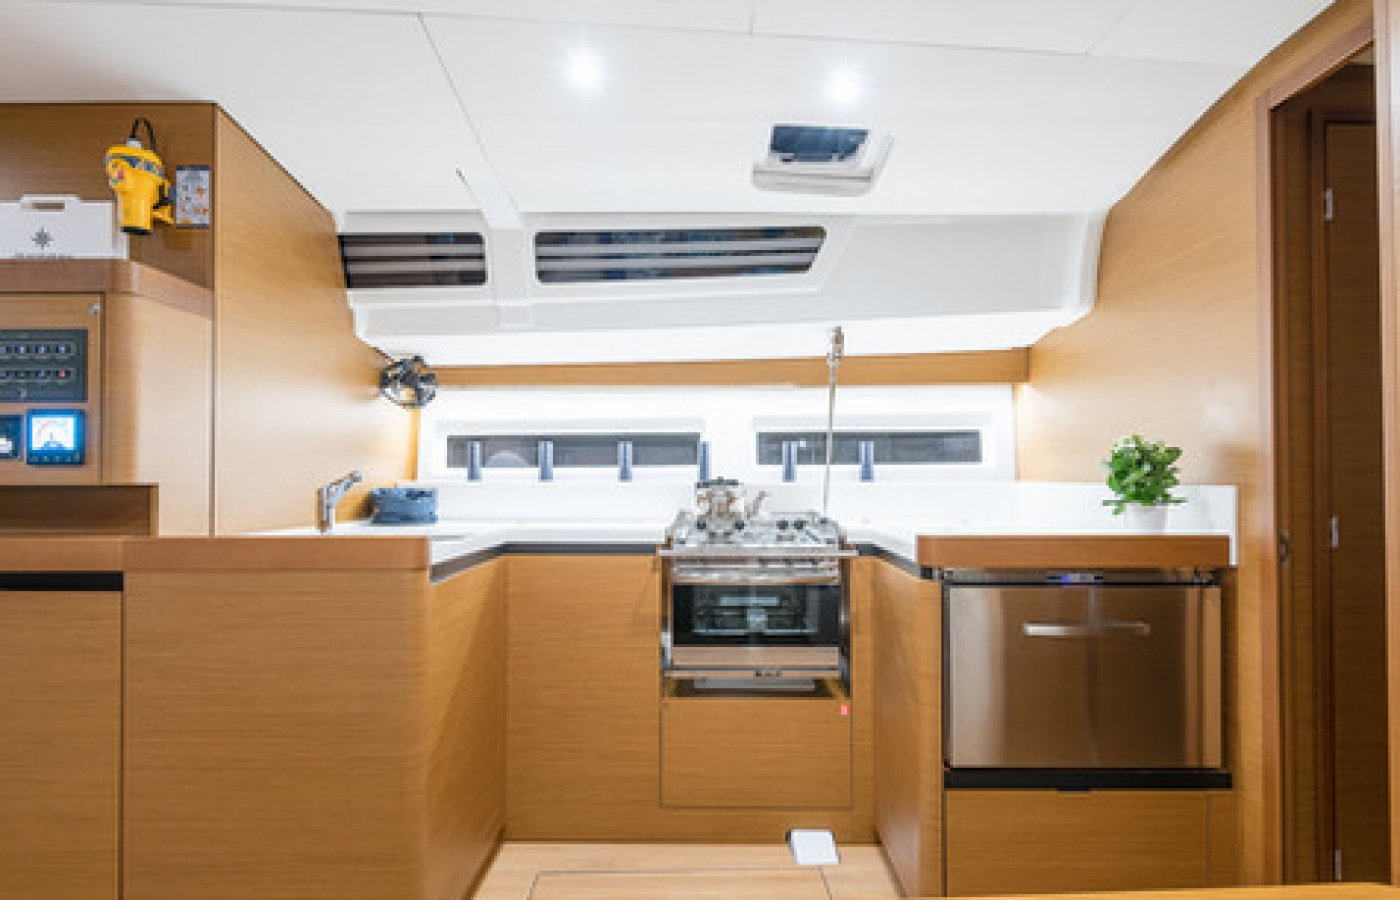 Close up of the galley and appliances